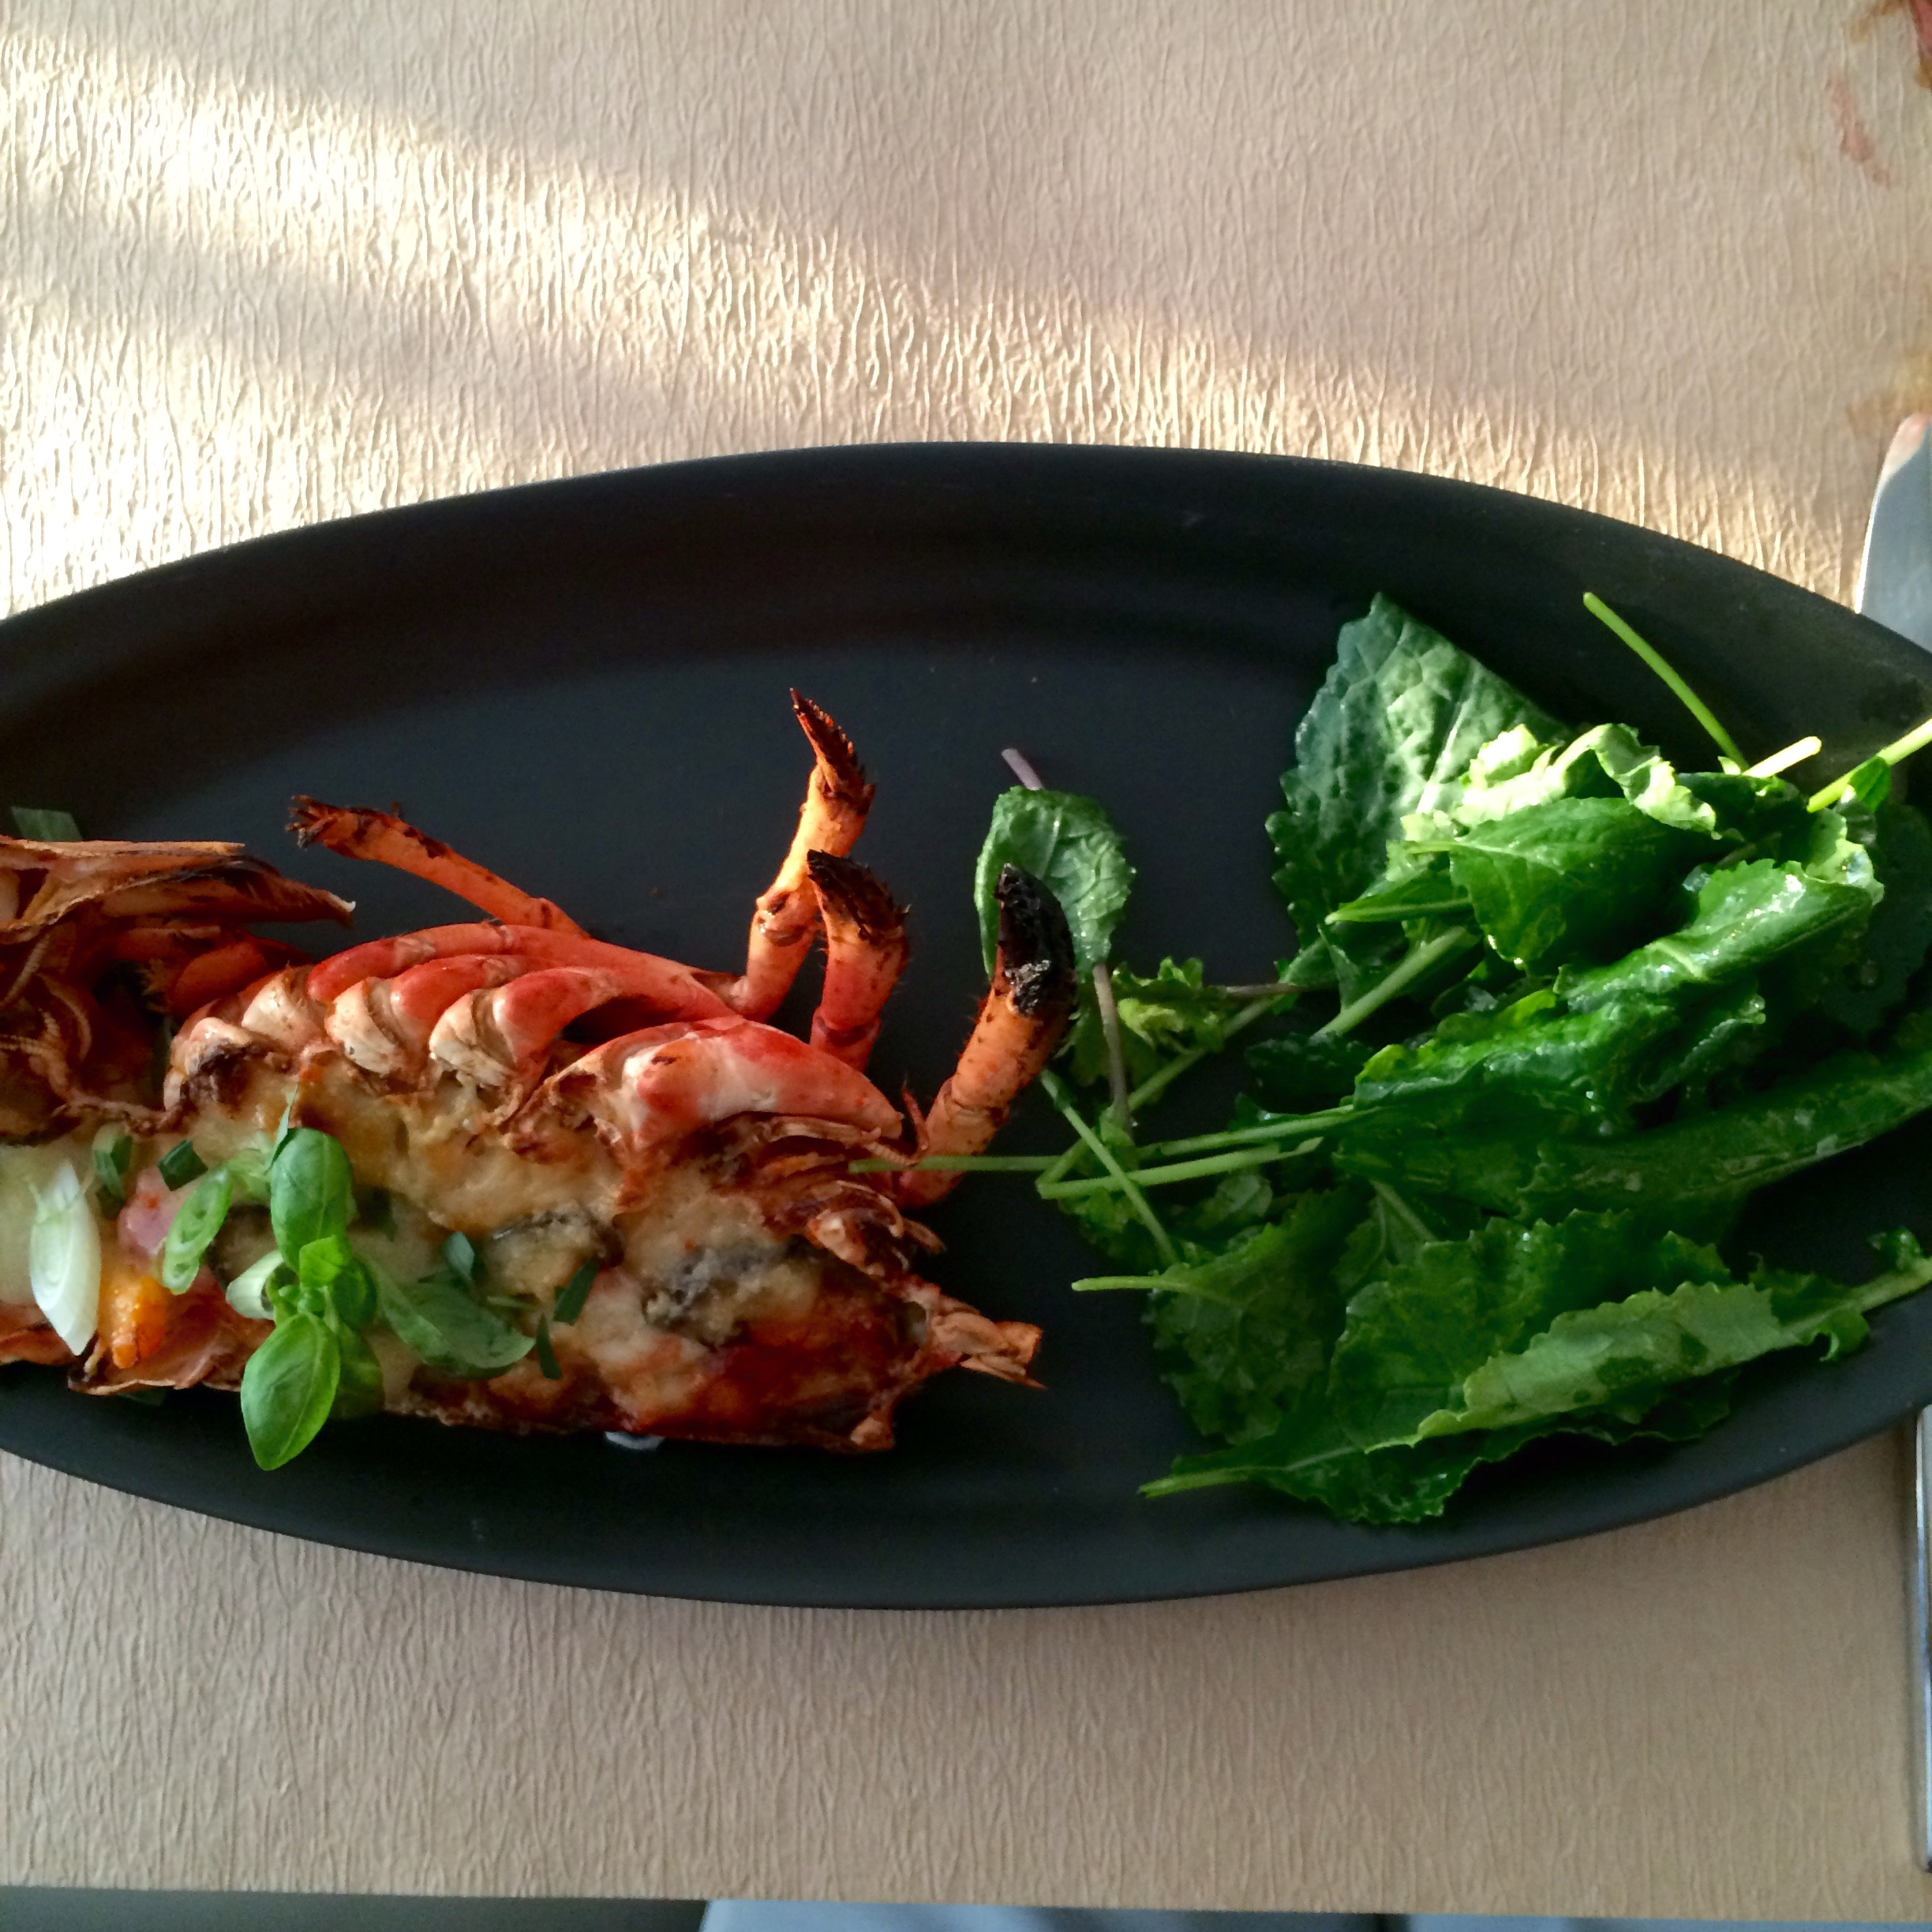 Lobster thermidor with gruyere, shiitake mushrooms, and tarragon served with kale salad